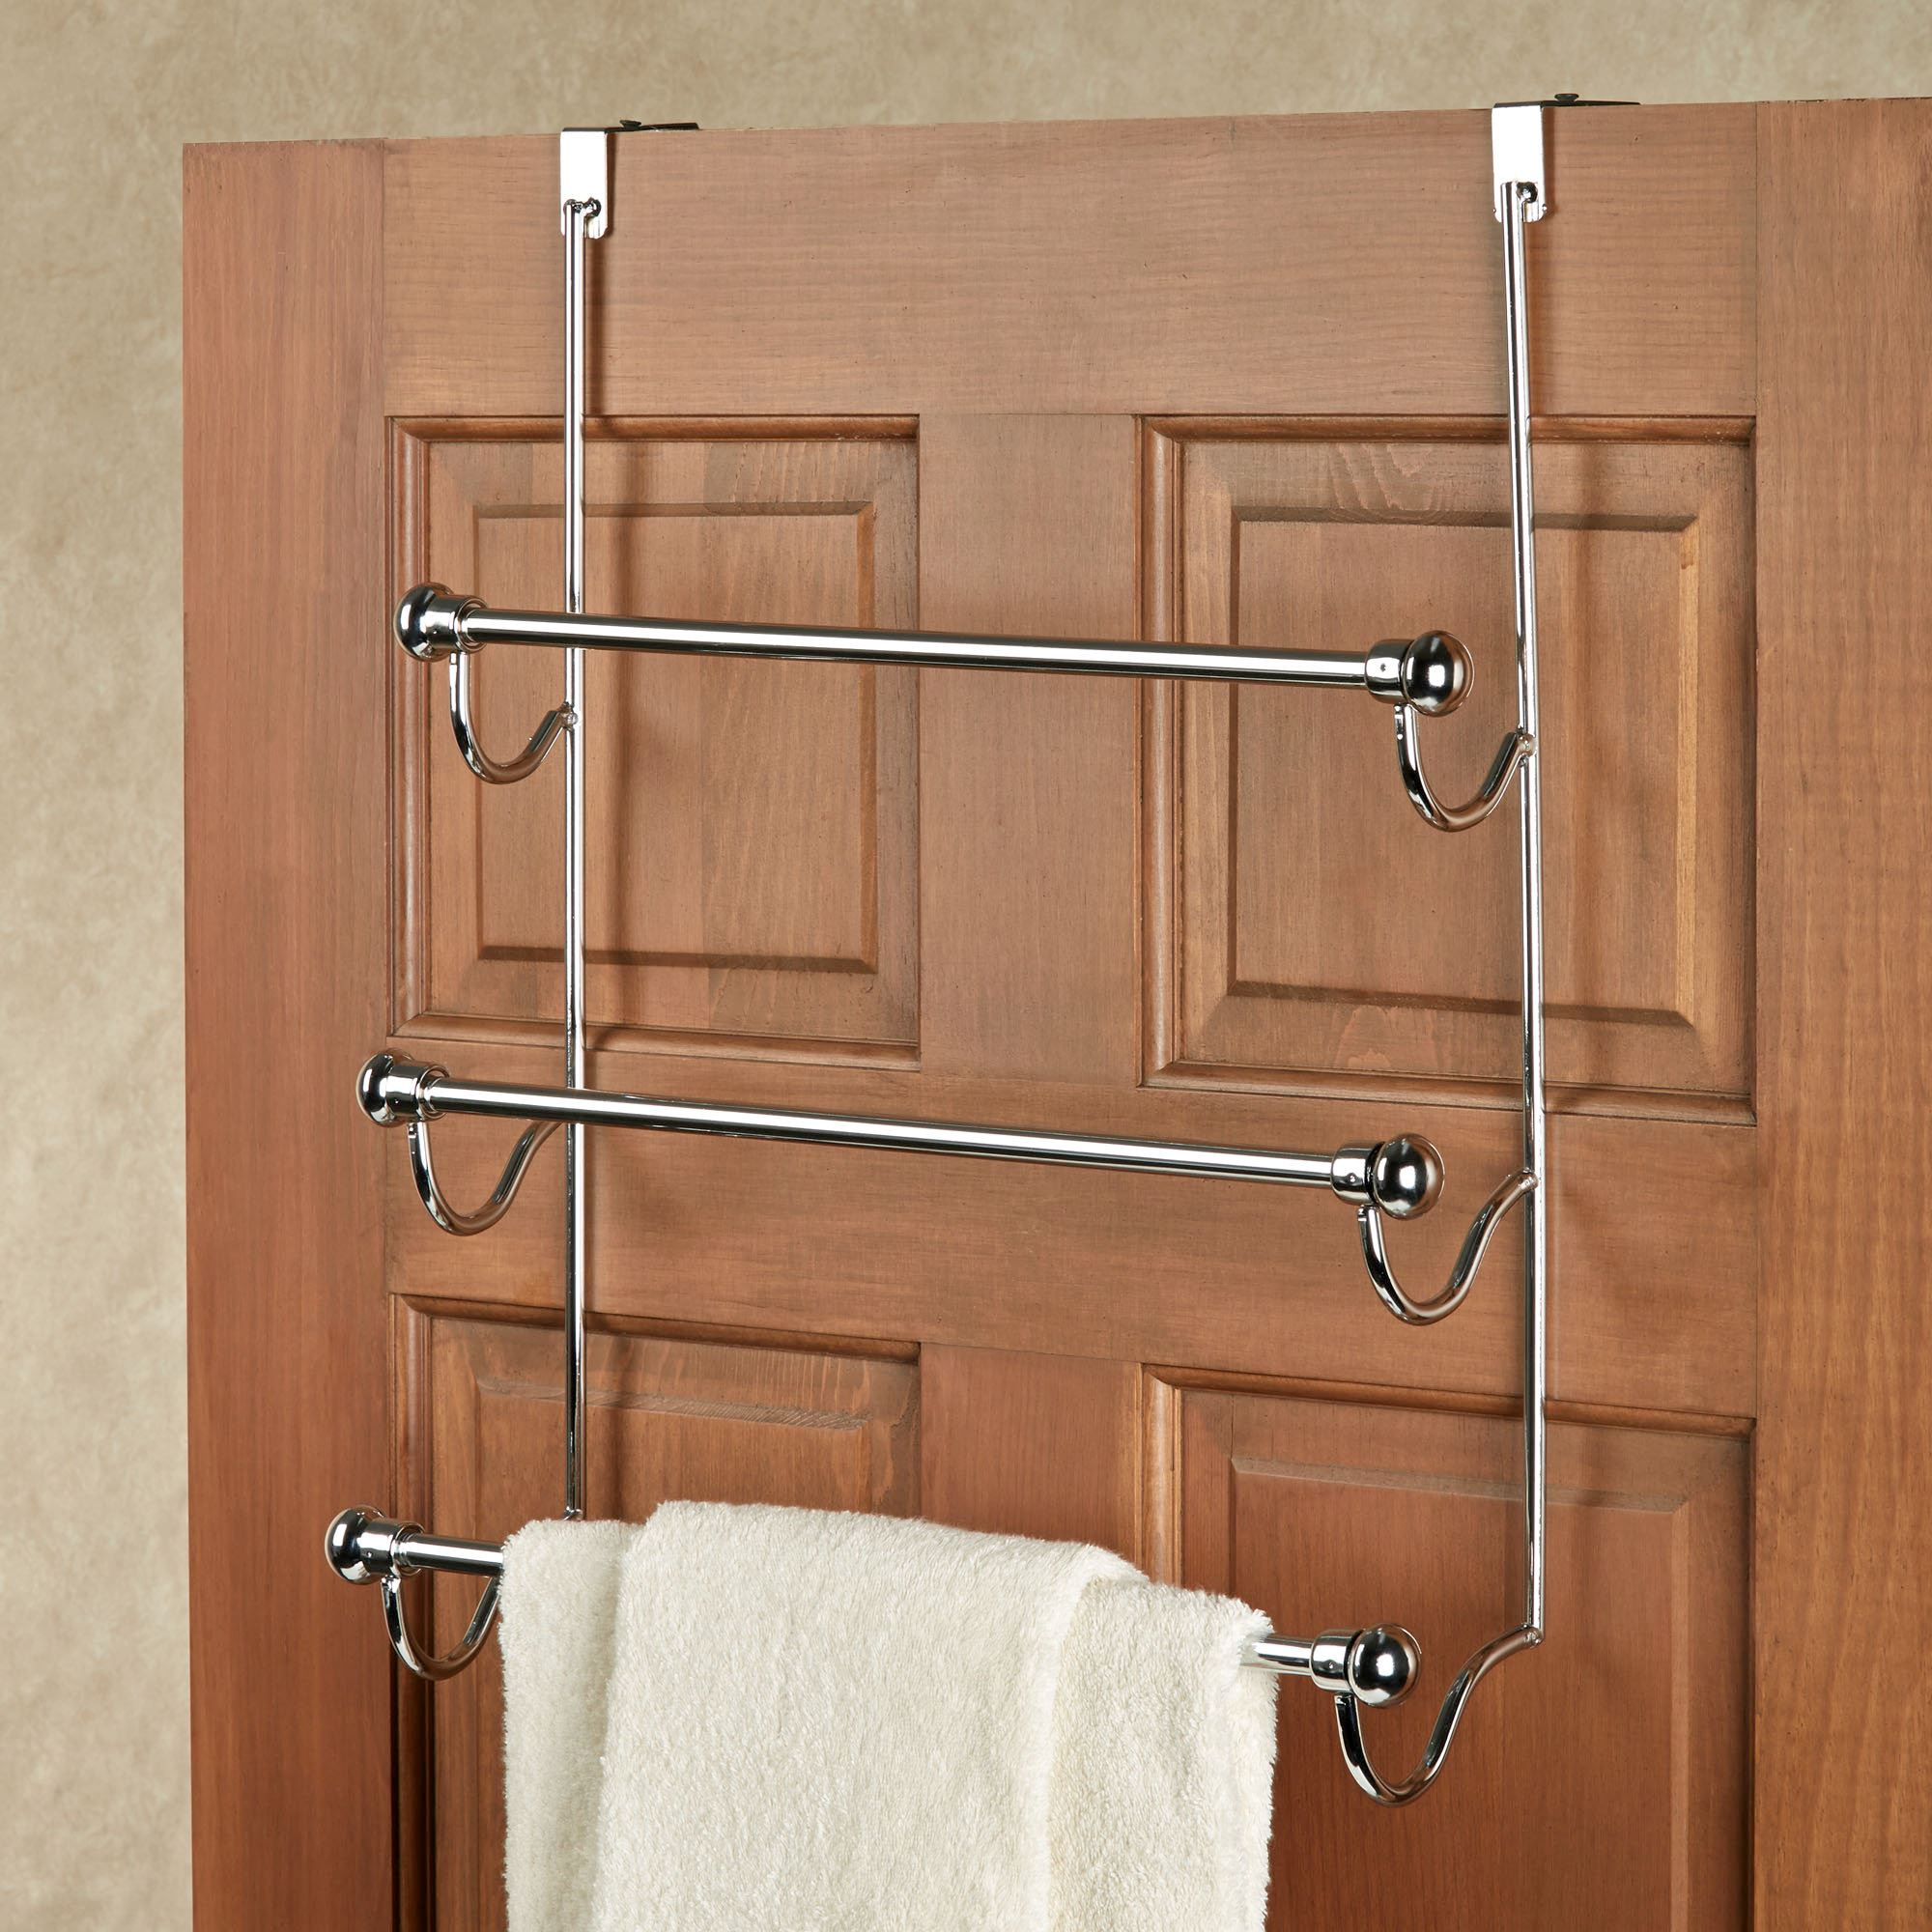 Superieur Over The Door Chrome Towel Rack. Touch To Zoom